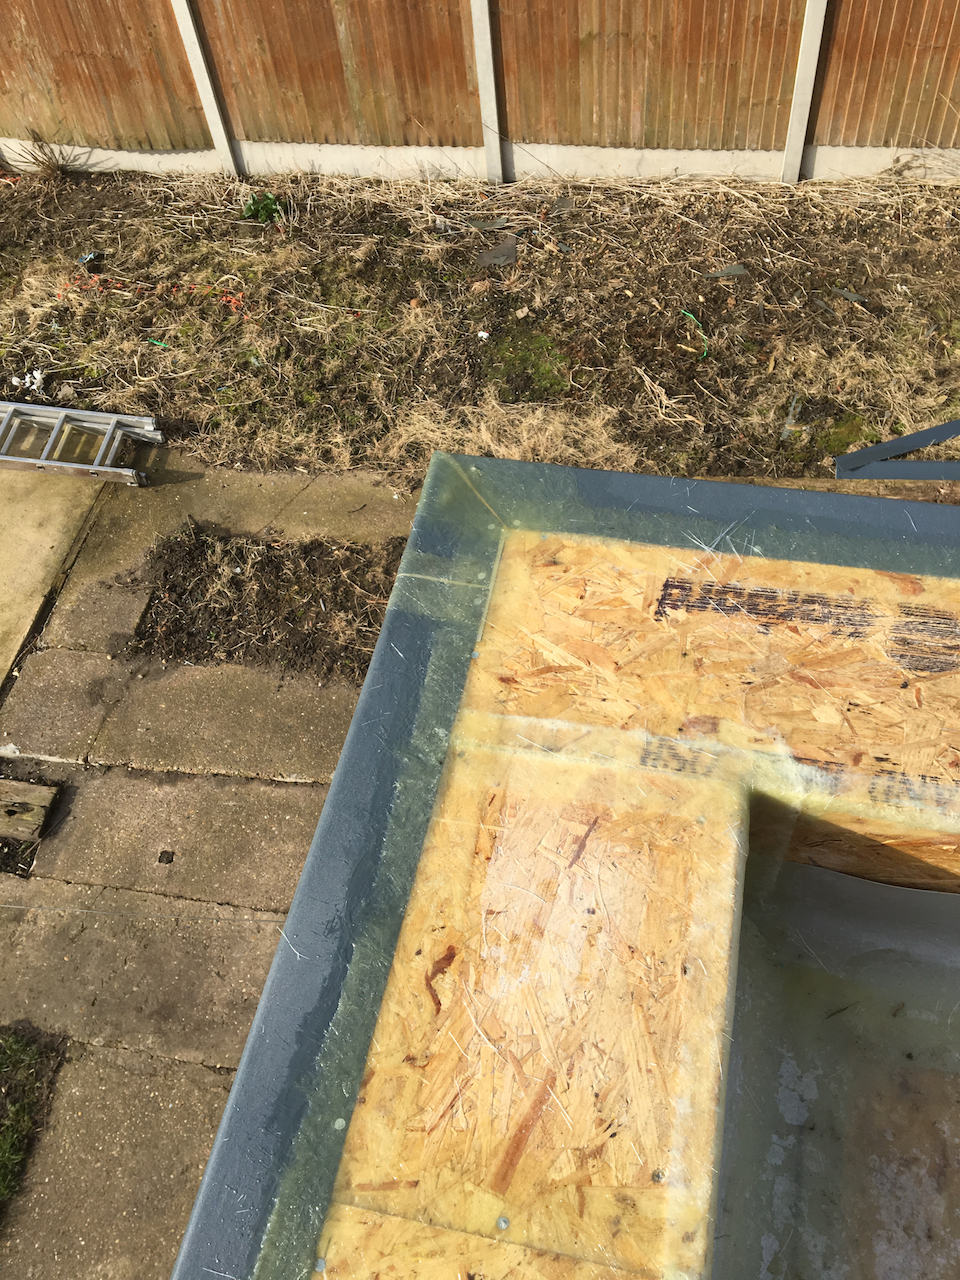 https://www.bluedotroofing.uk/wp-content/uploads/2018/02/grp-flat-roof-marton-lincolnshire-12.png